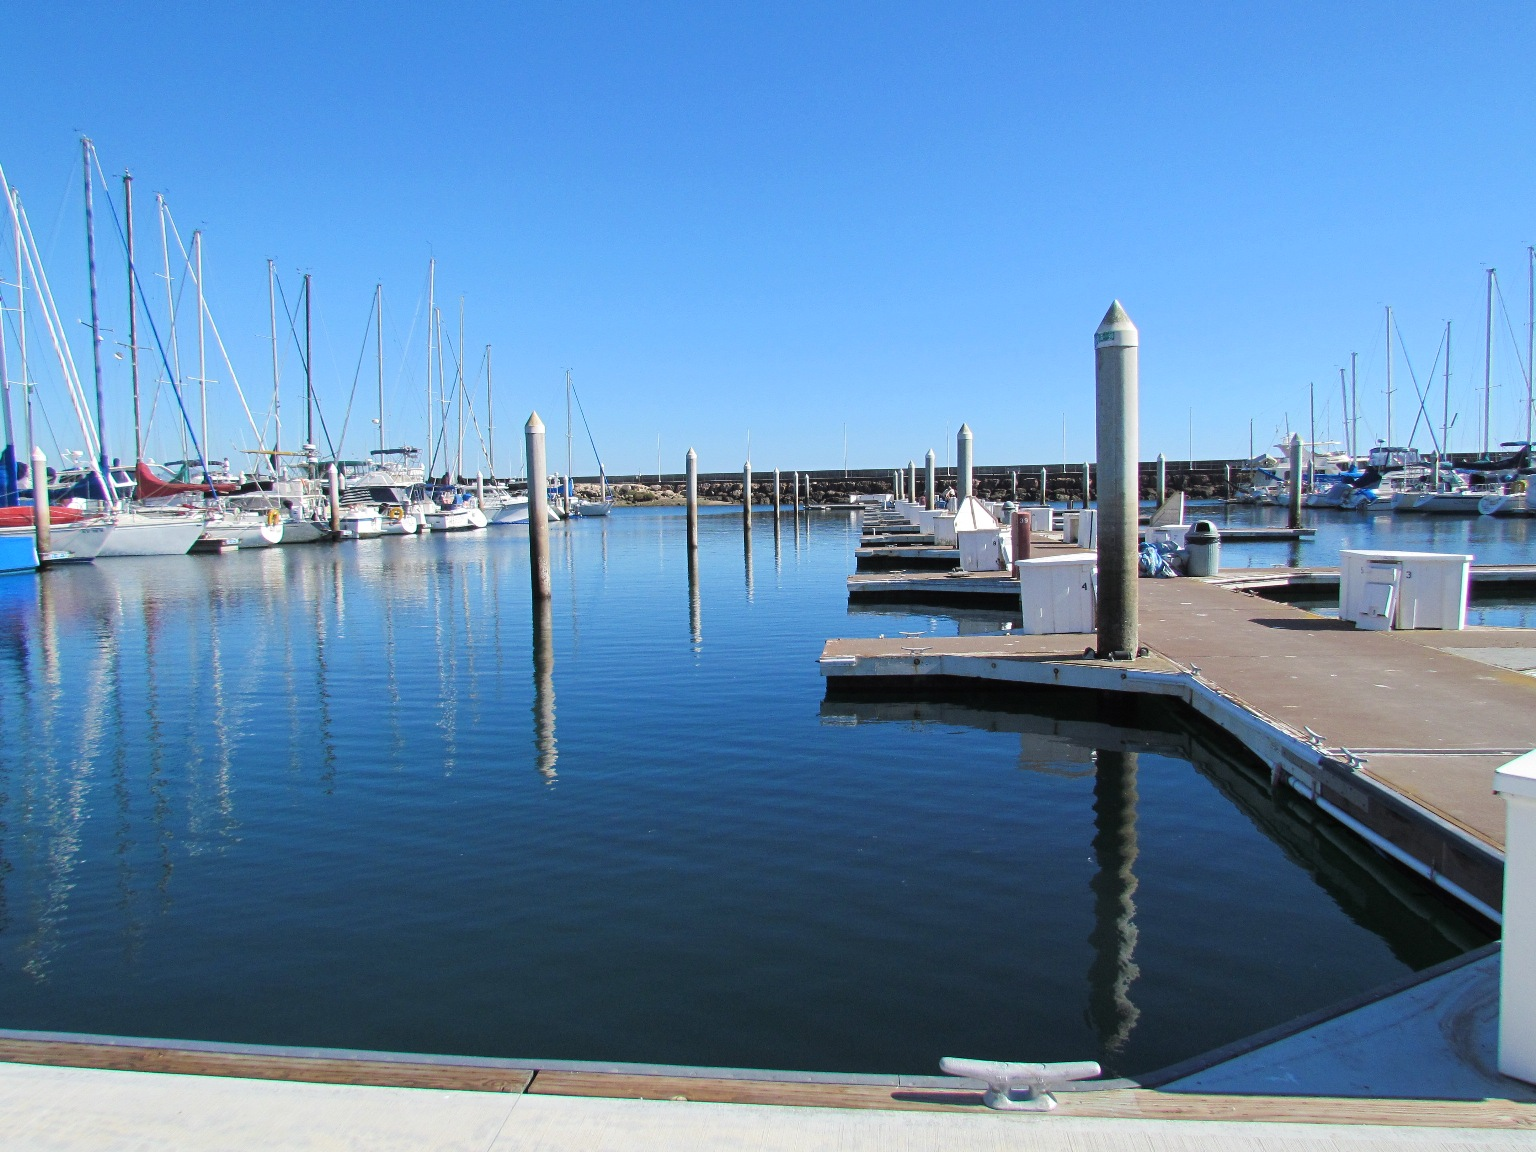 Santa Barbara Marina 1 Renovation Phase 3 Nearly Complete